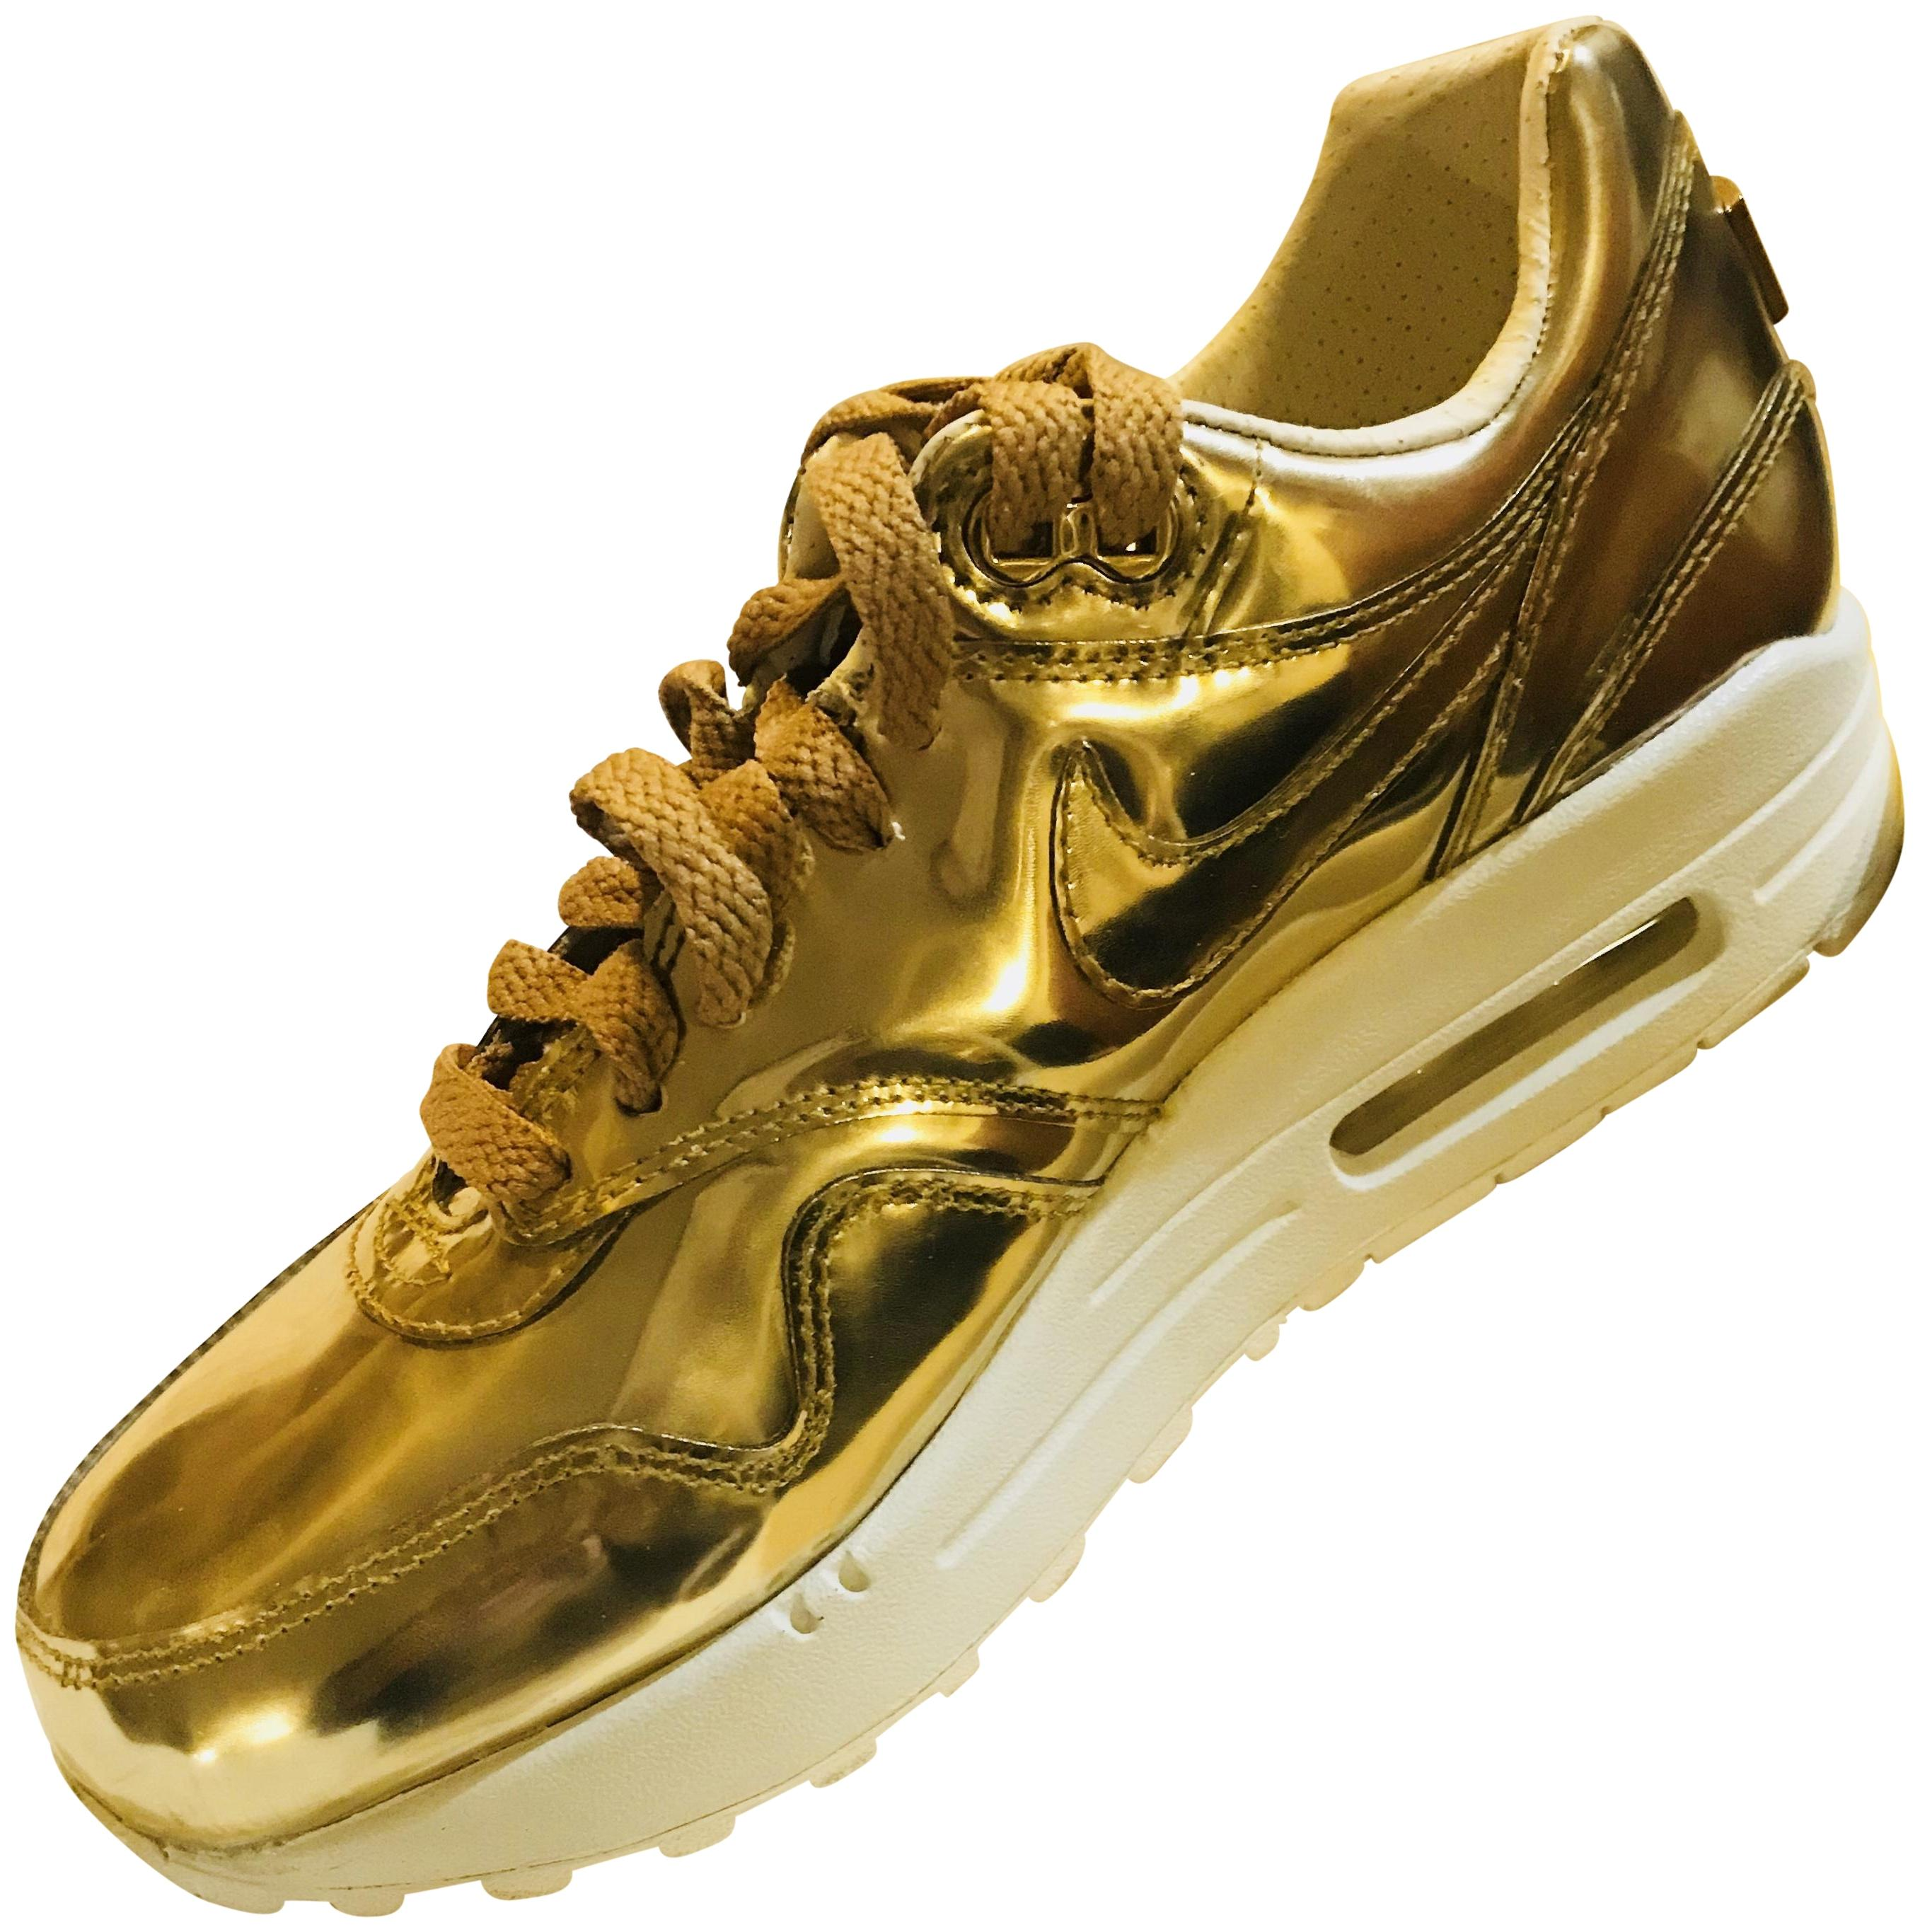 separation shoes bfb5e ce066 ... 90 store f7135 1d4e9 promo code for les nike air max liquid gold f8e5f  77fe7 where can i buy nike limited edition liquid gold athletic 60fdf dae8b  ...